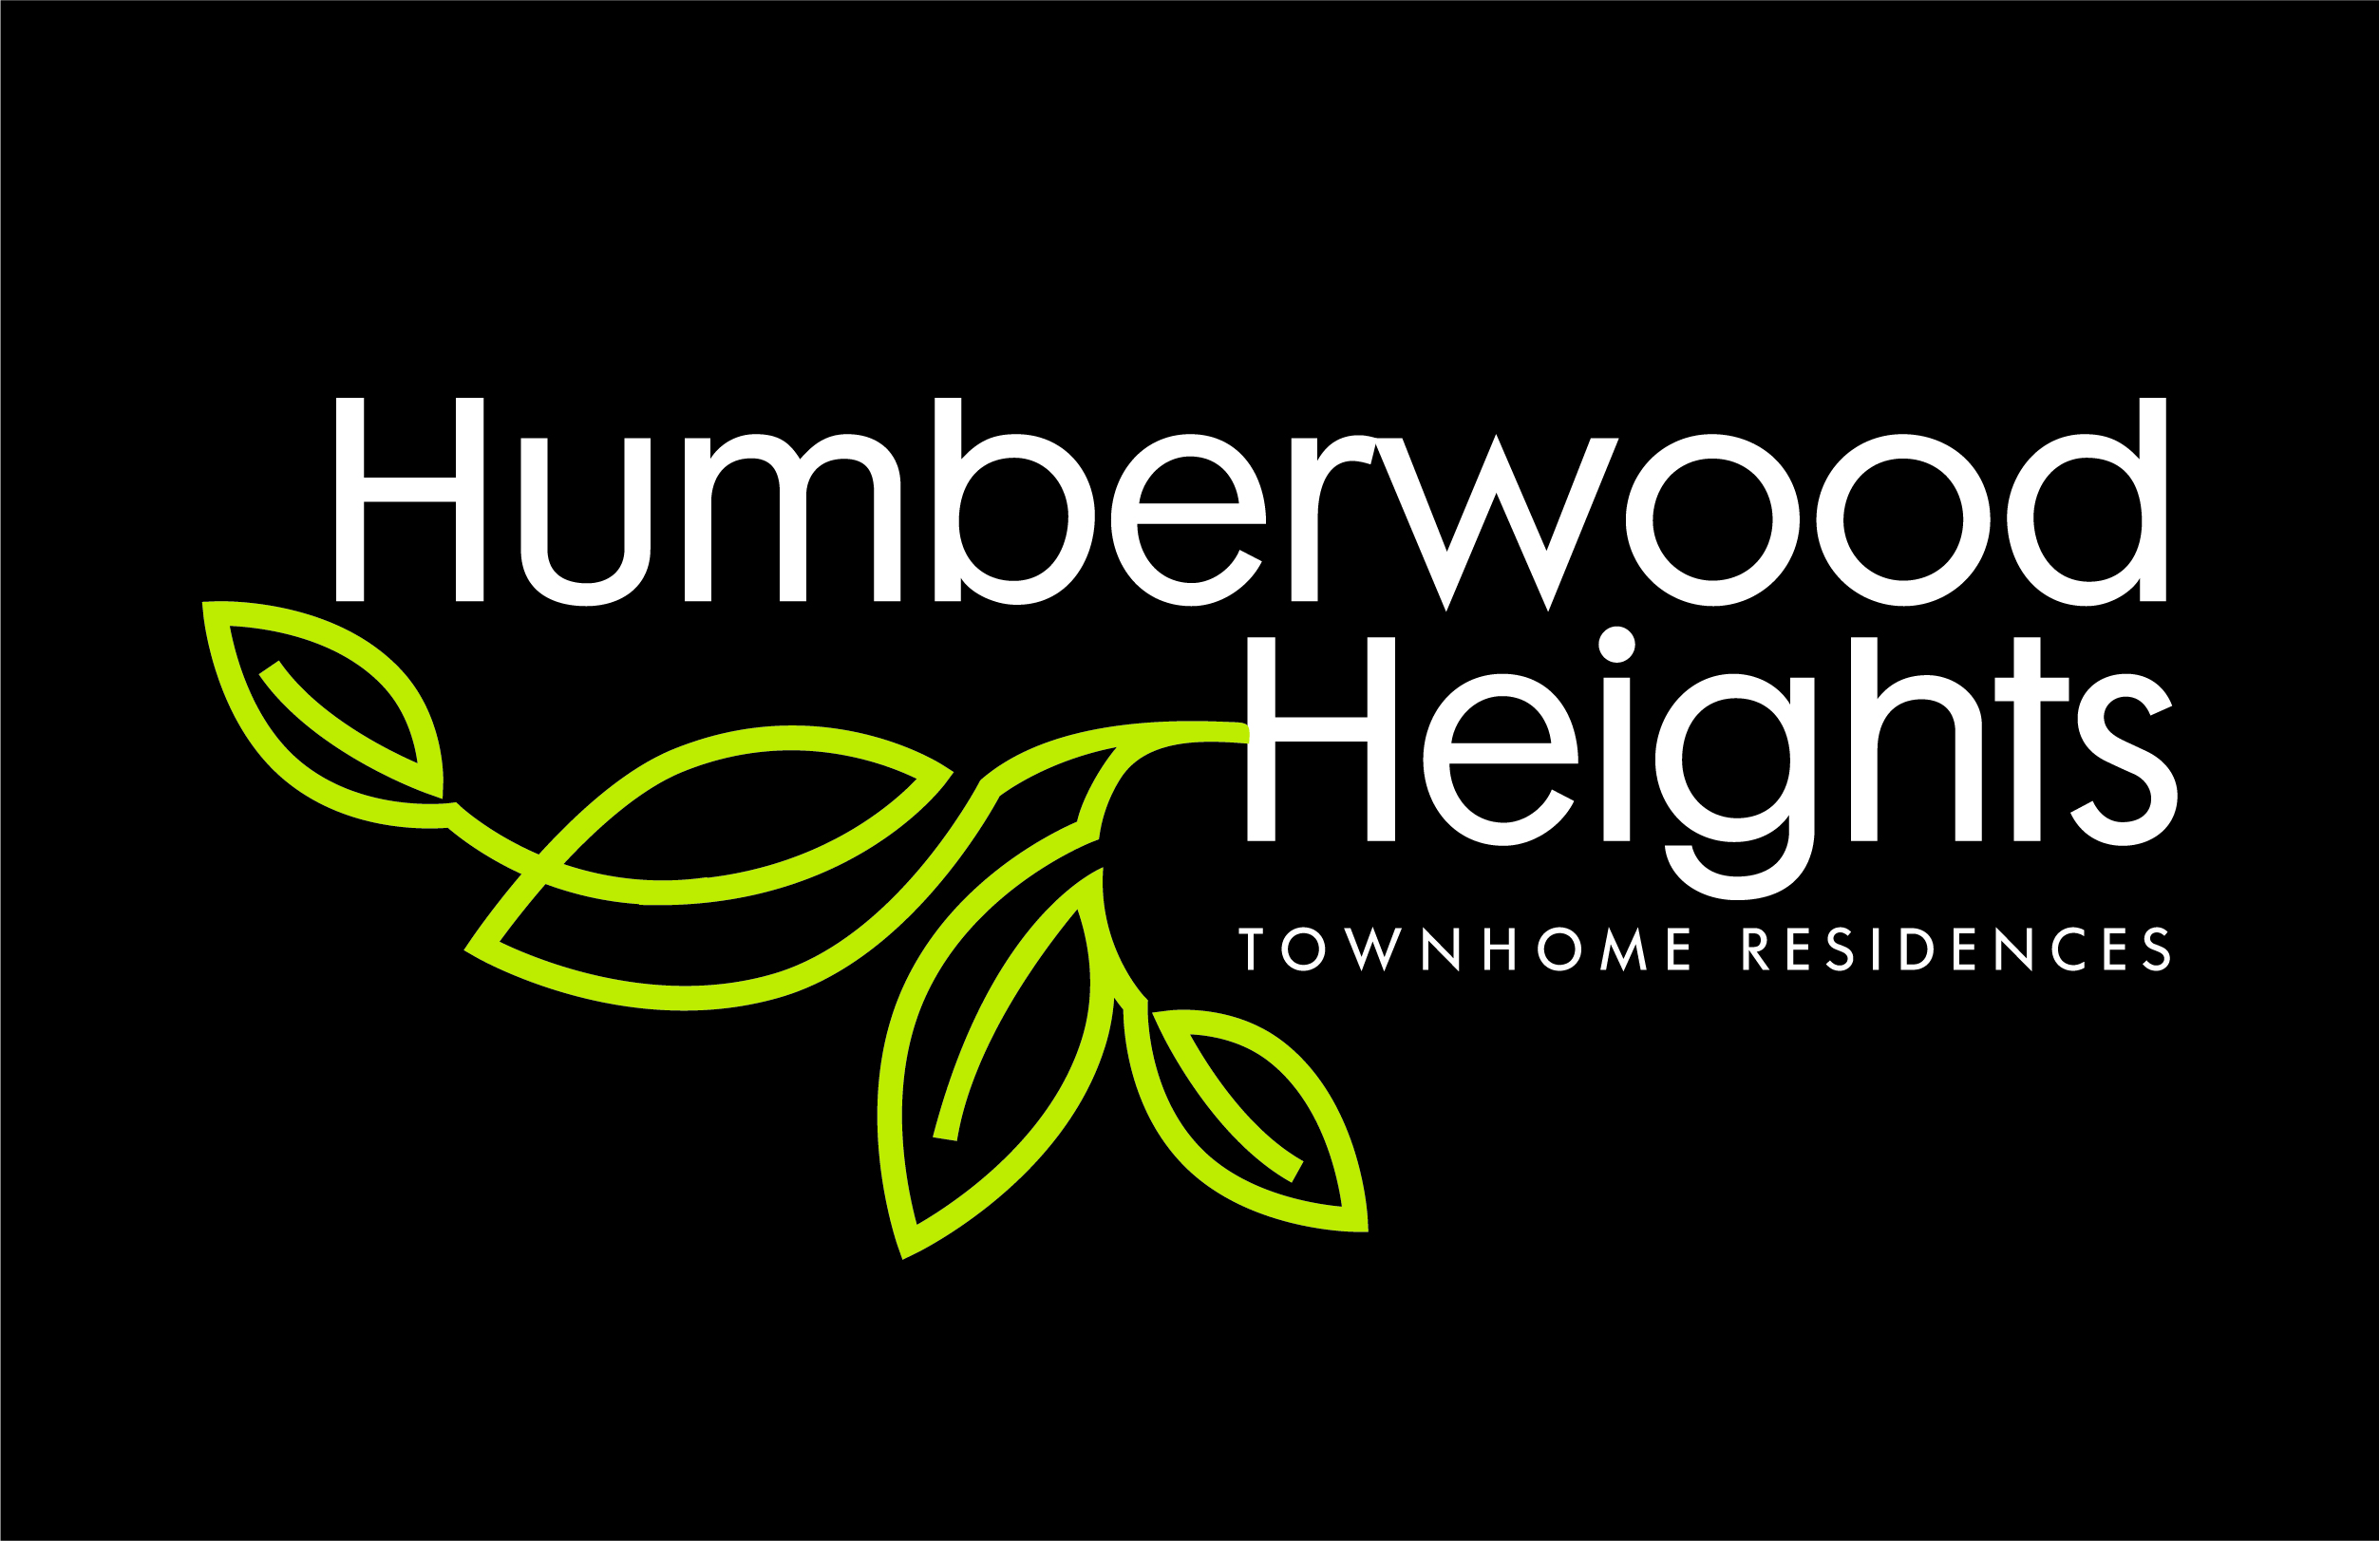 Humberwood Heights Townhome Residences - North Etobicoke -SOLD OUT